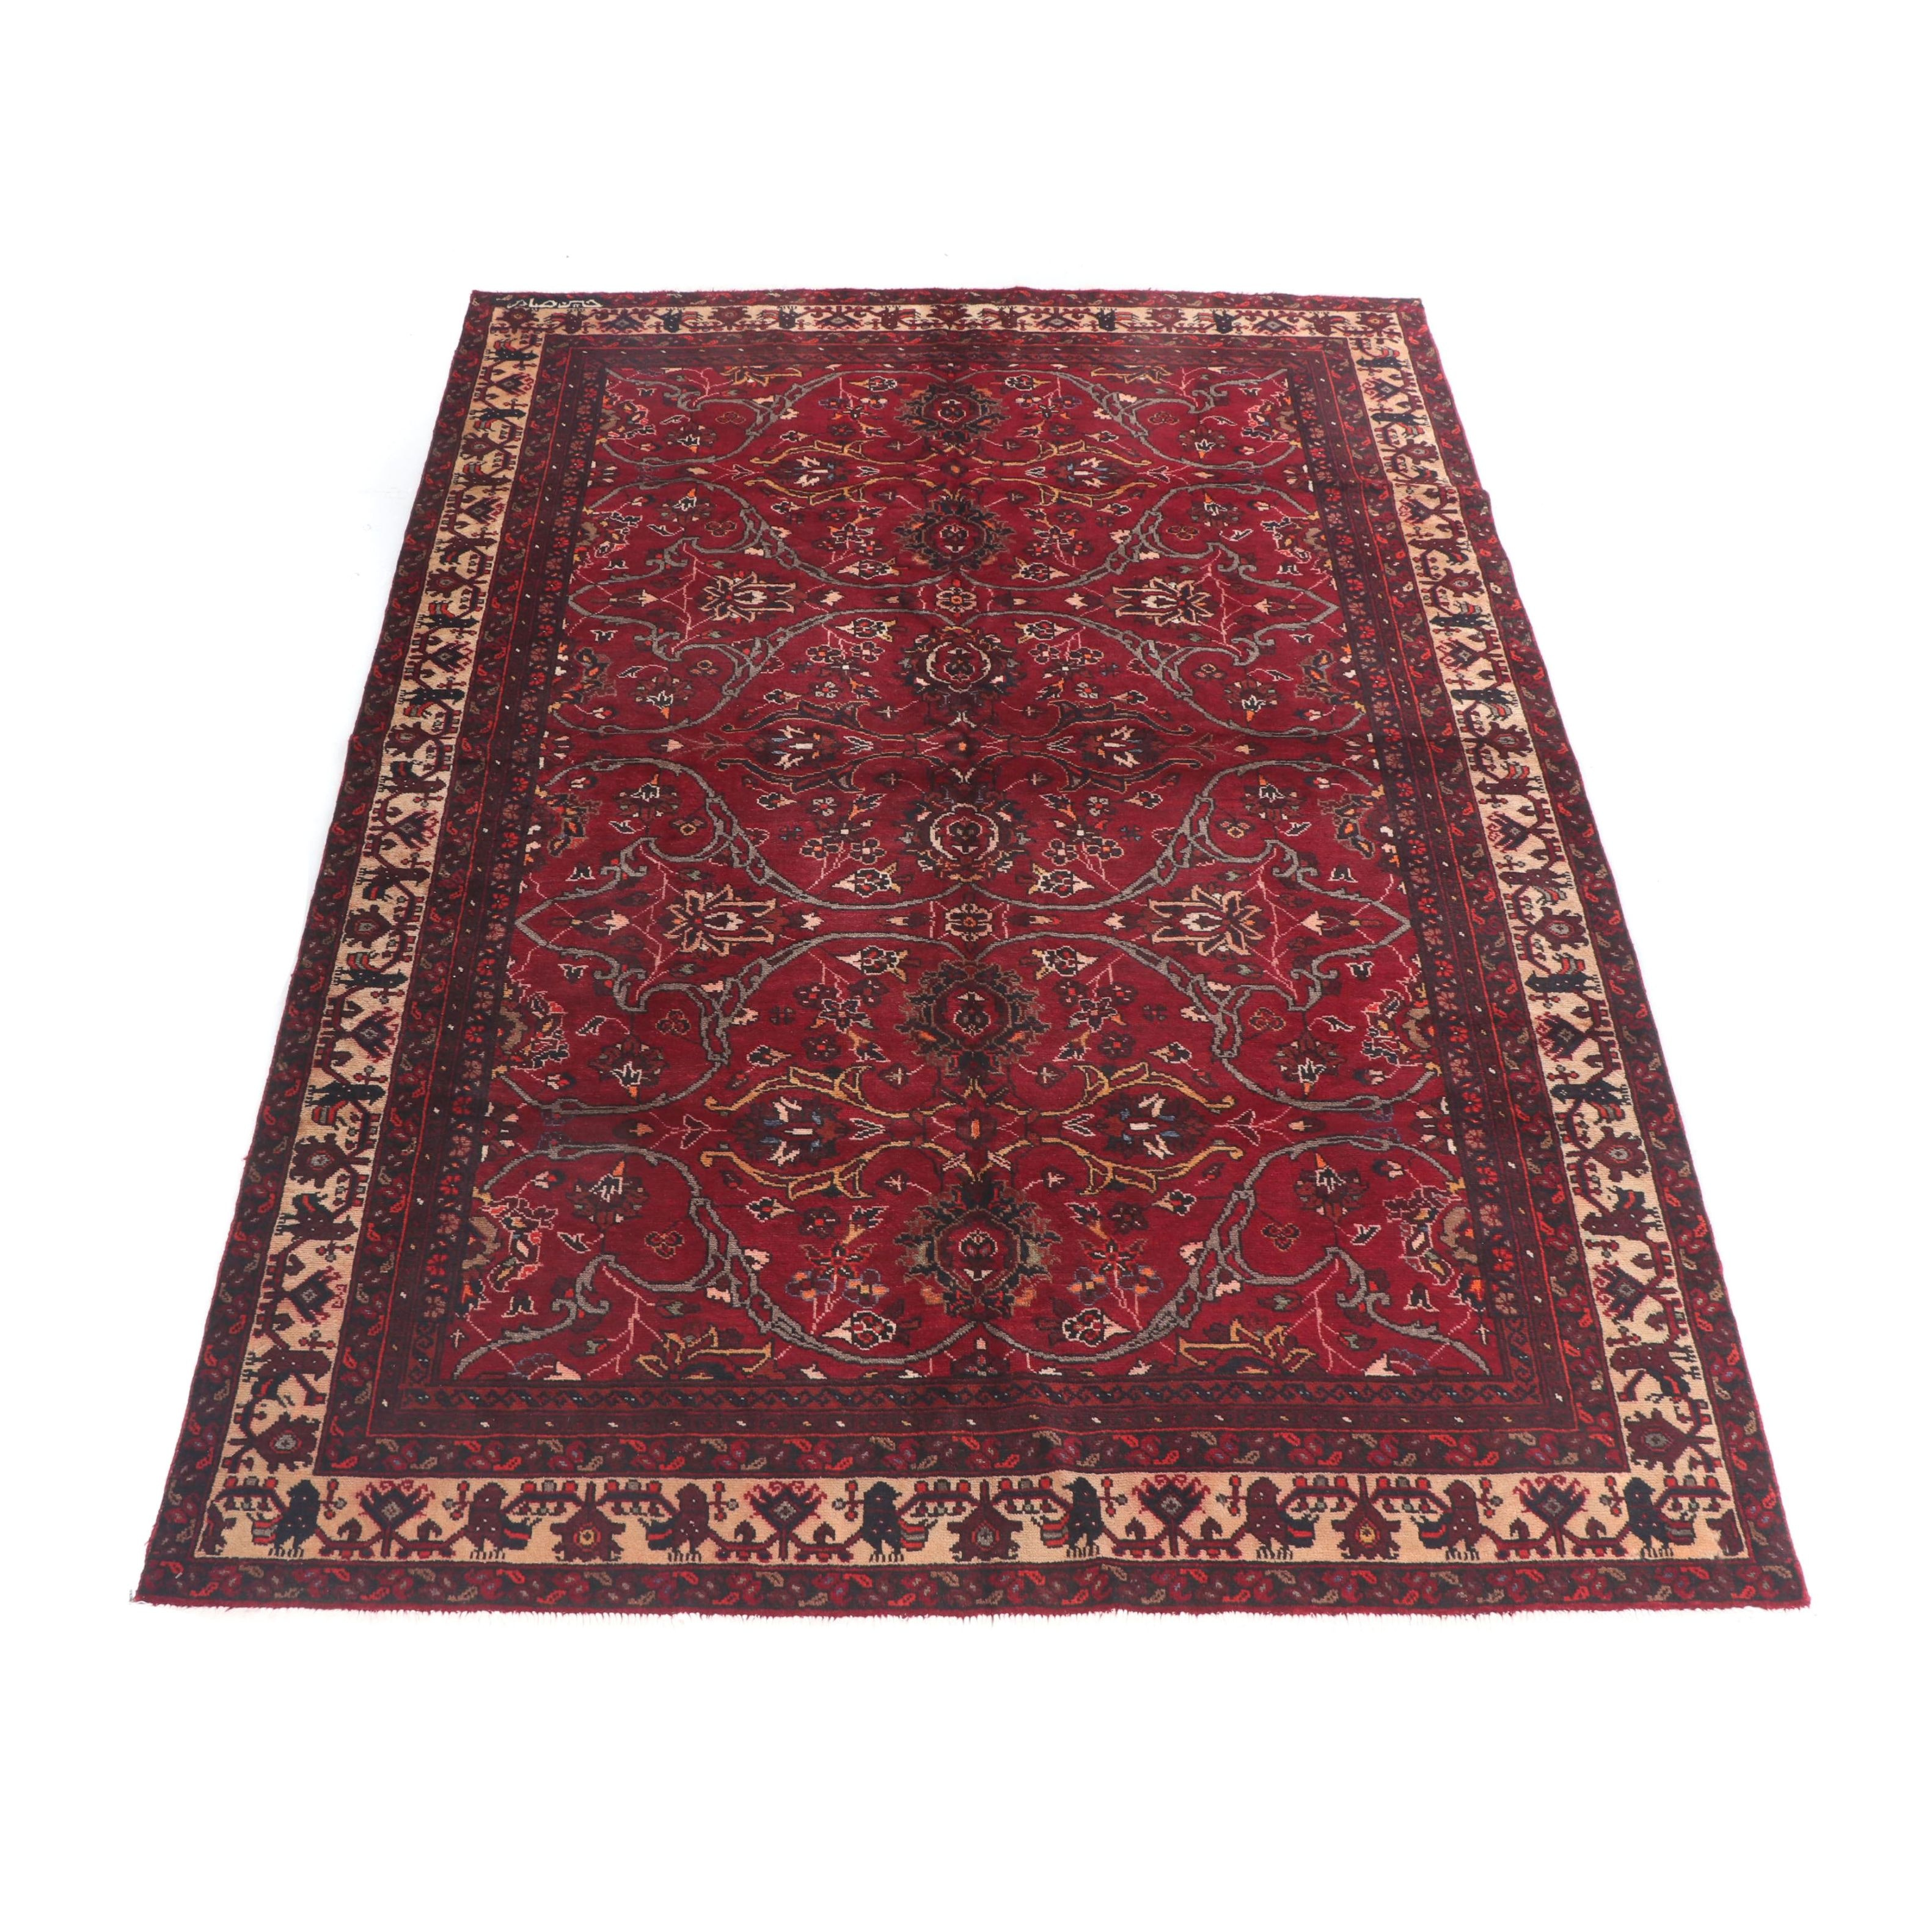 Hand-Knotted, Signed Persian Baluch Wool Rug